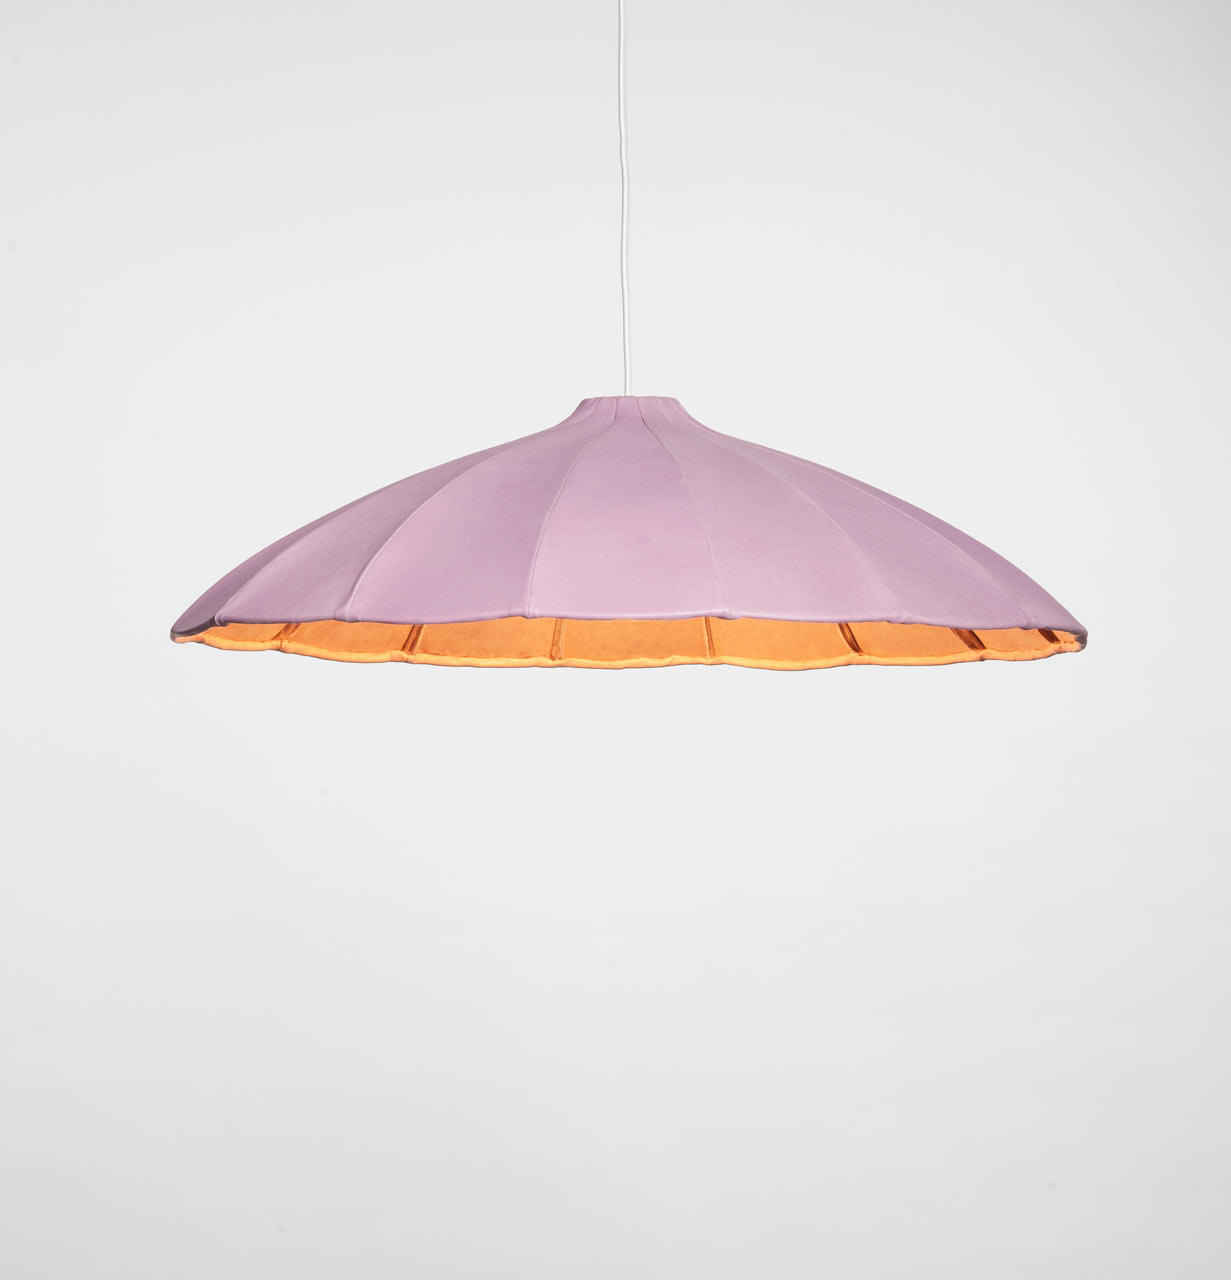 Anna_Palomaa-10-umbrella-lights